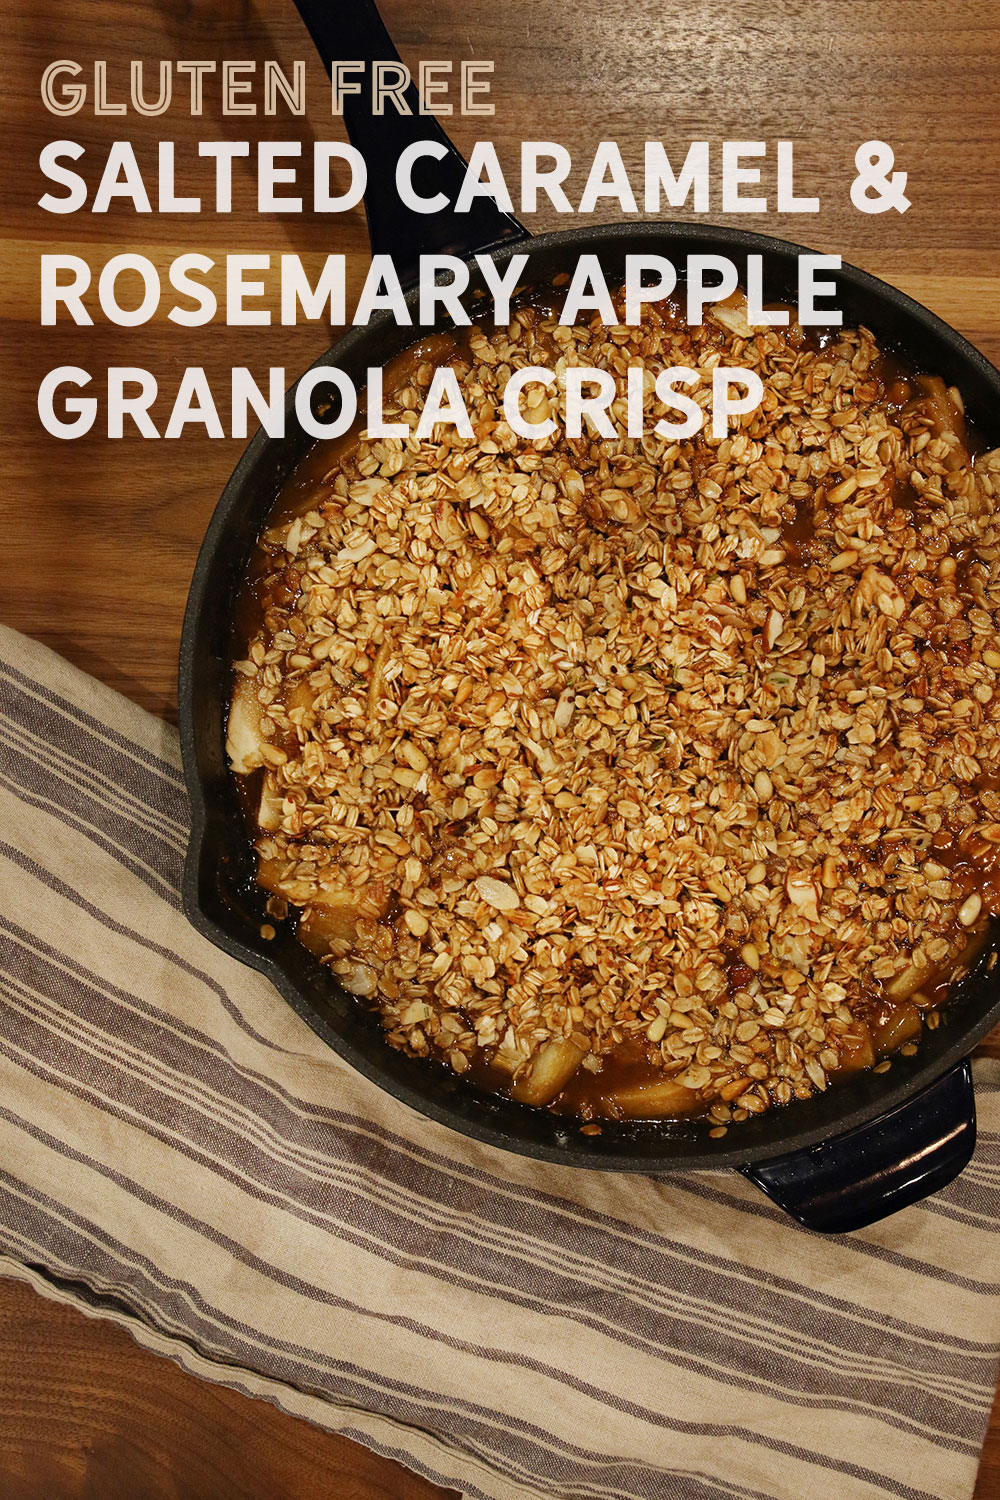 Ingredients • 1/4 cup sliced almonds • 1/4 cup pine nuts • 2 cups rolled oats (gluten free if that's what you're going for) • 1 tsp chopped fresh rosemary • 2 tsp olive oil • 1/4 cup honey • 5 Pink Lady apples (or another tart eating apple) • 5 Granny Smith apples • 2 lemons, juiced • salt • 1 stick salted butter • 2 sprigs rosemary • 2 cups brown sugar • 1/4 cup dark corn syrup • 1 cup heavy cream • 1.5 Tbsp cornstarch • 1/2 cup Mascarpone cheese • 1 tsp bee pollen (optional)